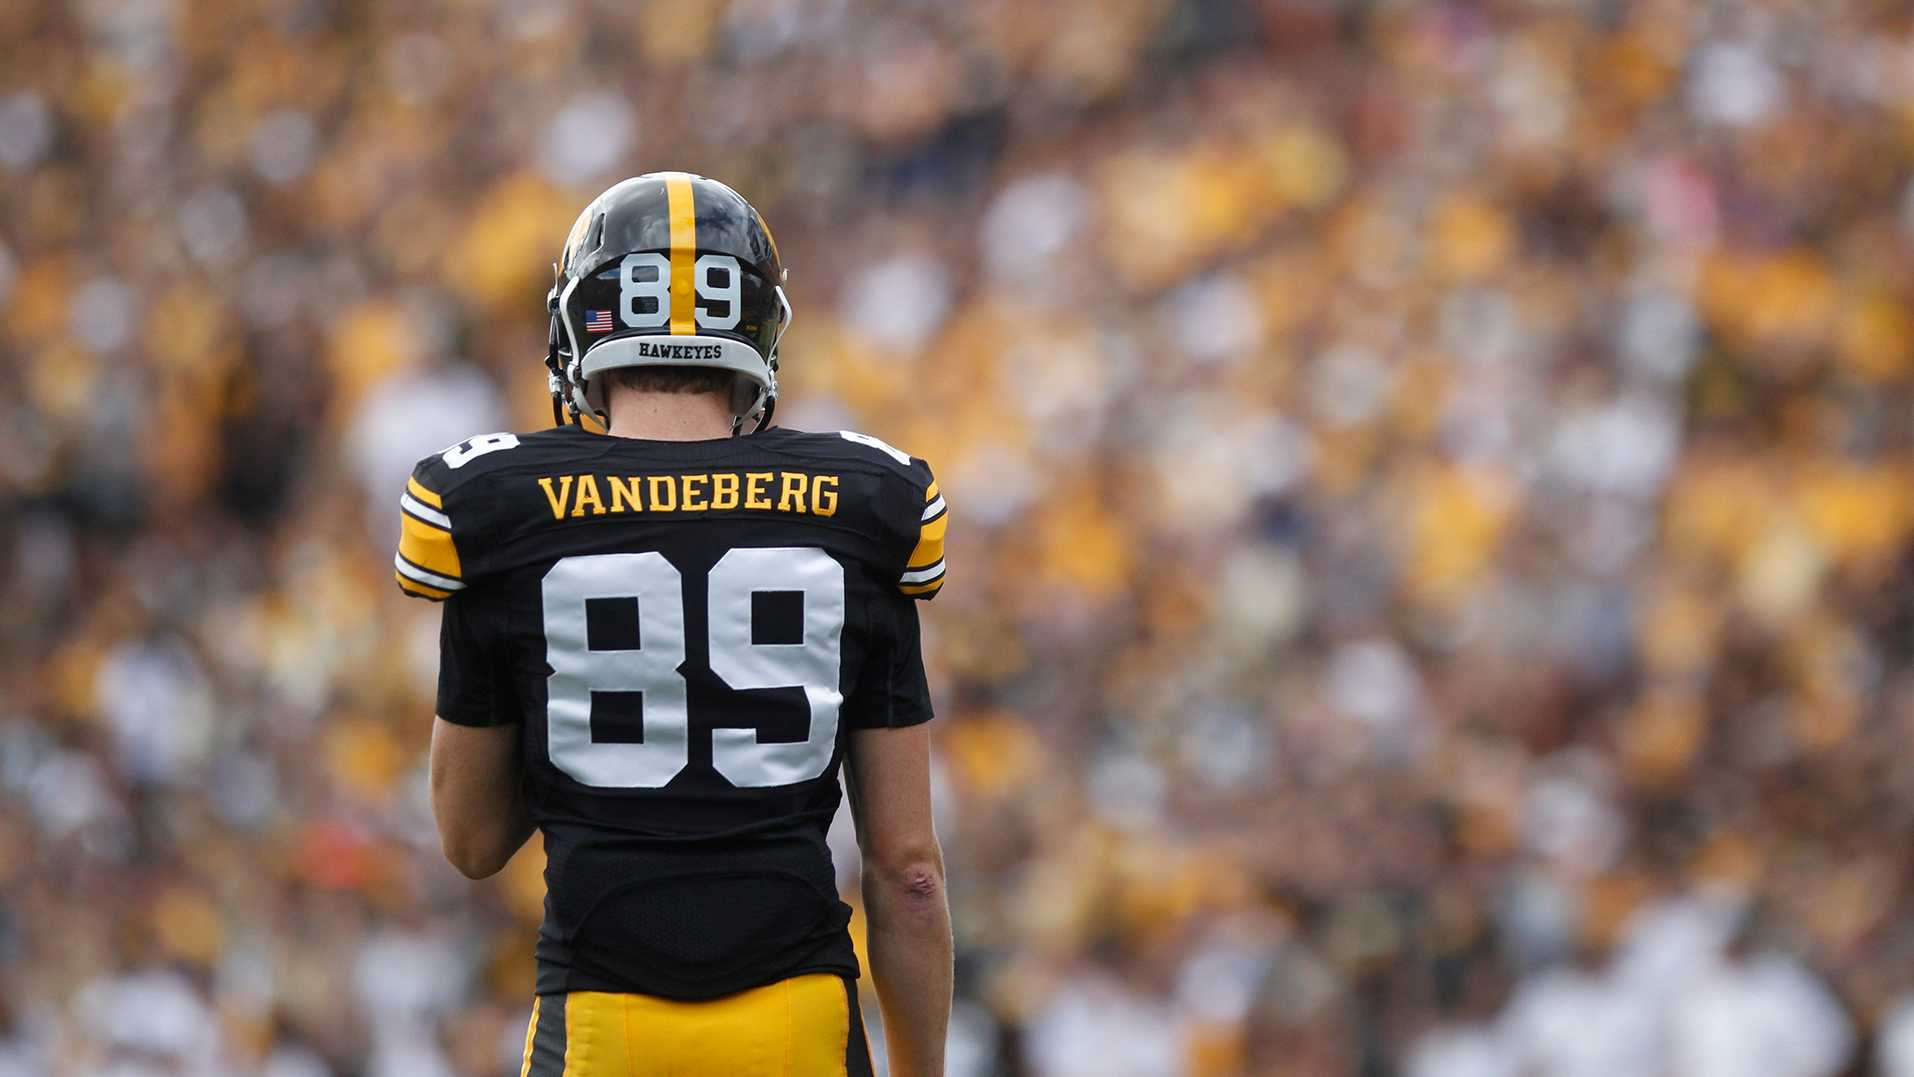 Iowa wide receiver Matt VandeBerg awaits for a punt return from UNI at the UNI game at Kinnick Stadium on Saturday, Aug. 30, 2014. (File Photo/The Daily Iowan)